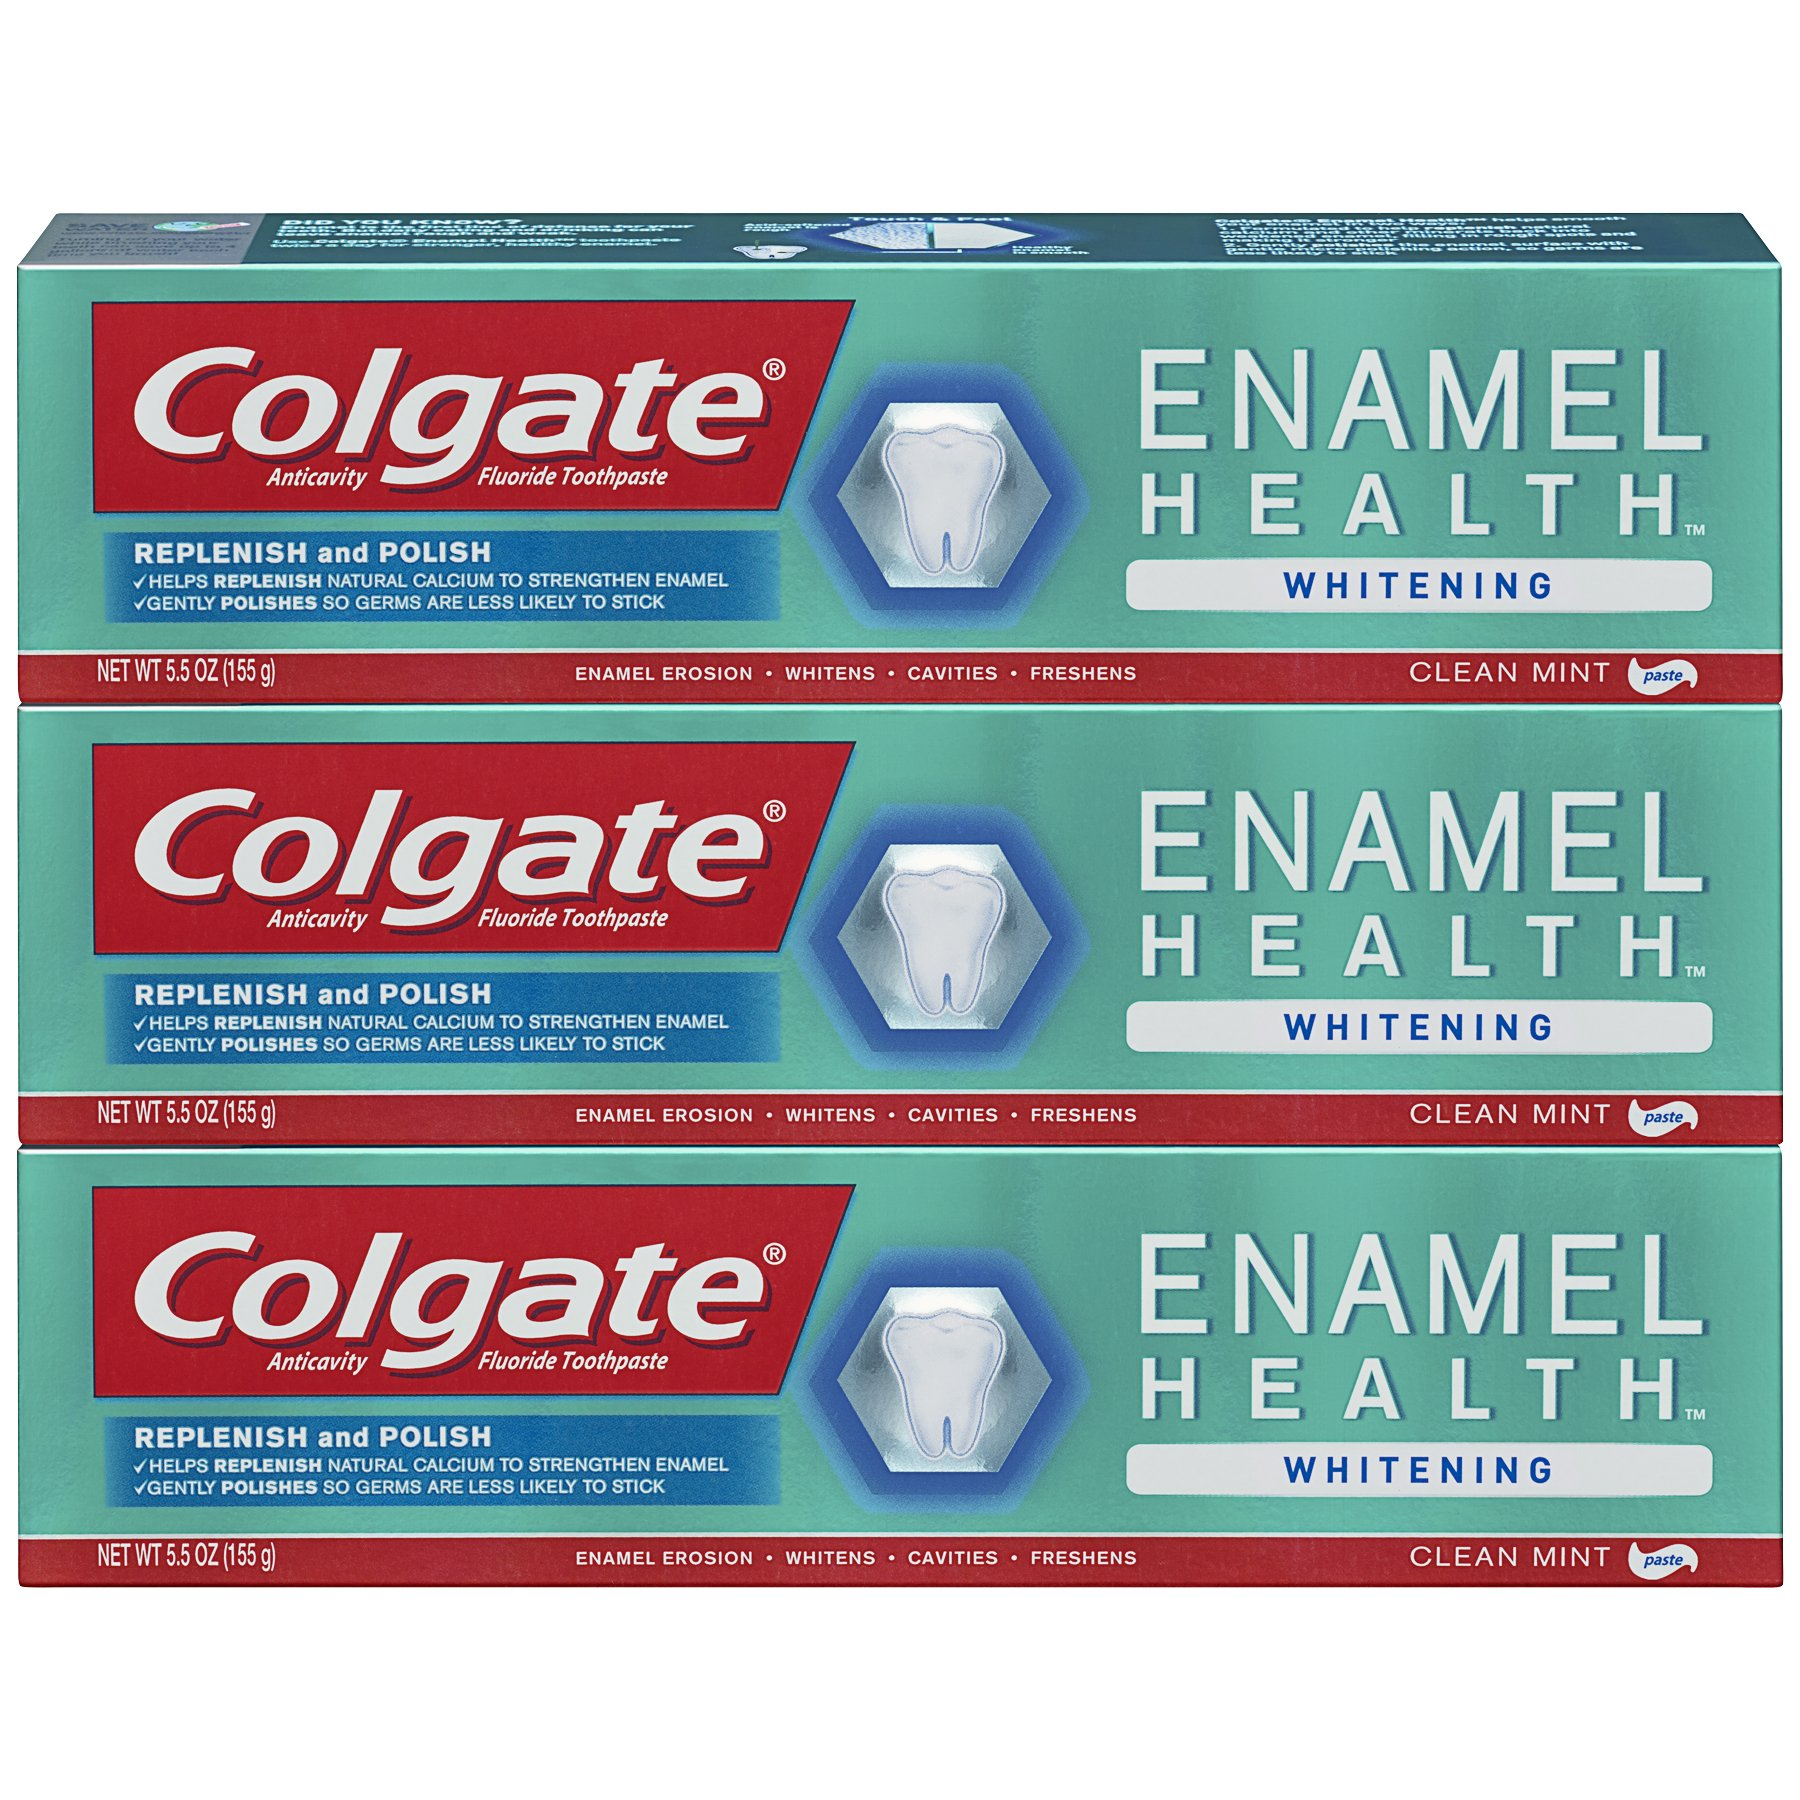 Colgate Enamel Health Whitening Toothpaste - 5.5 ounce (3 Pack)